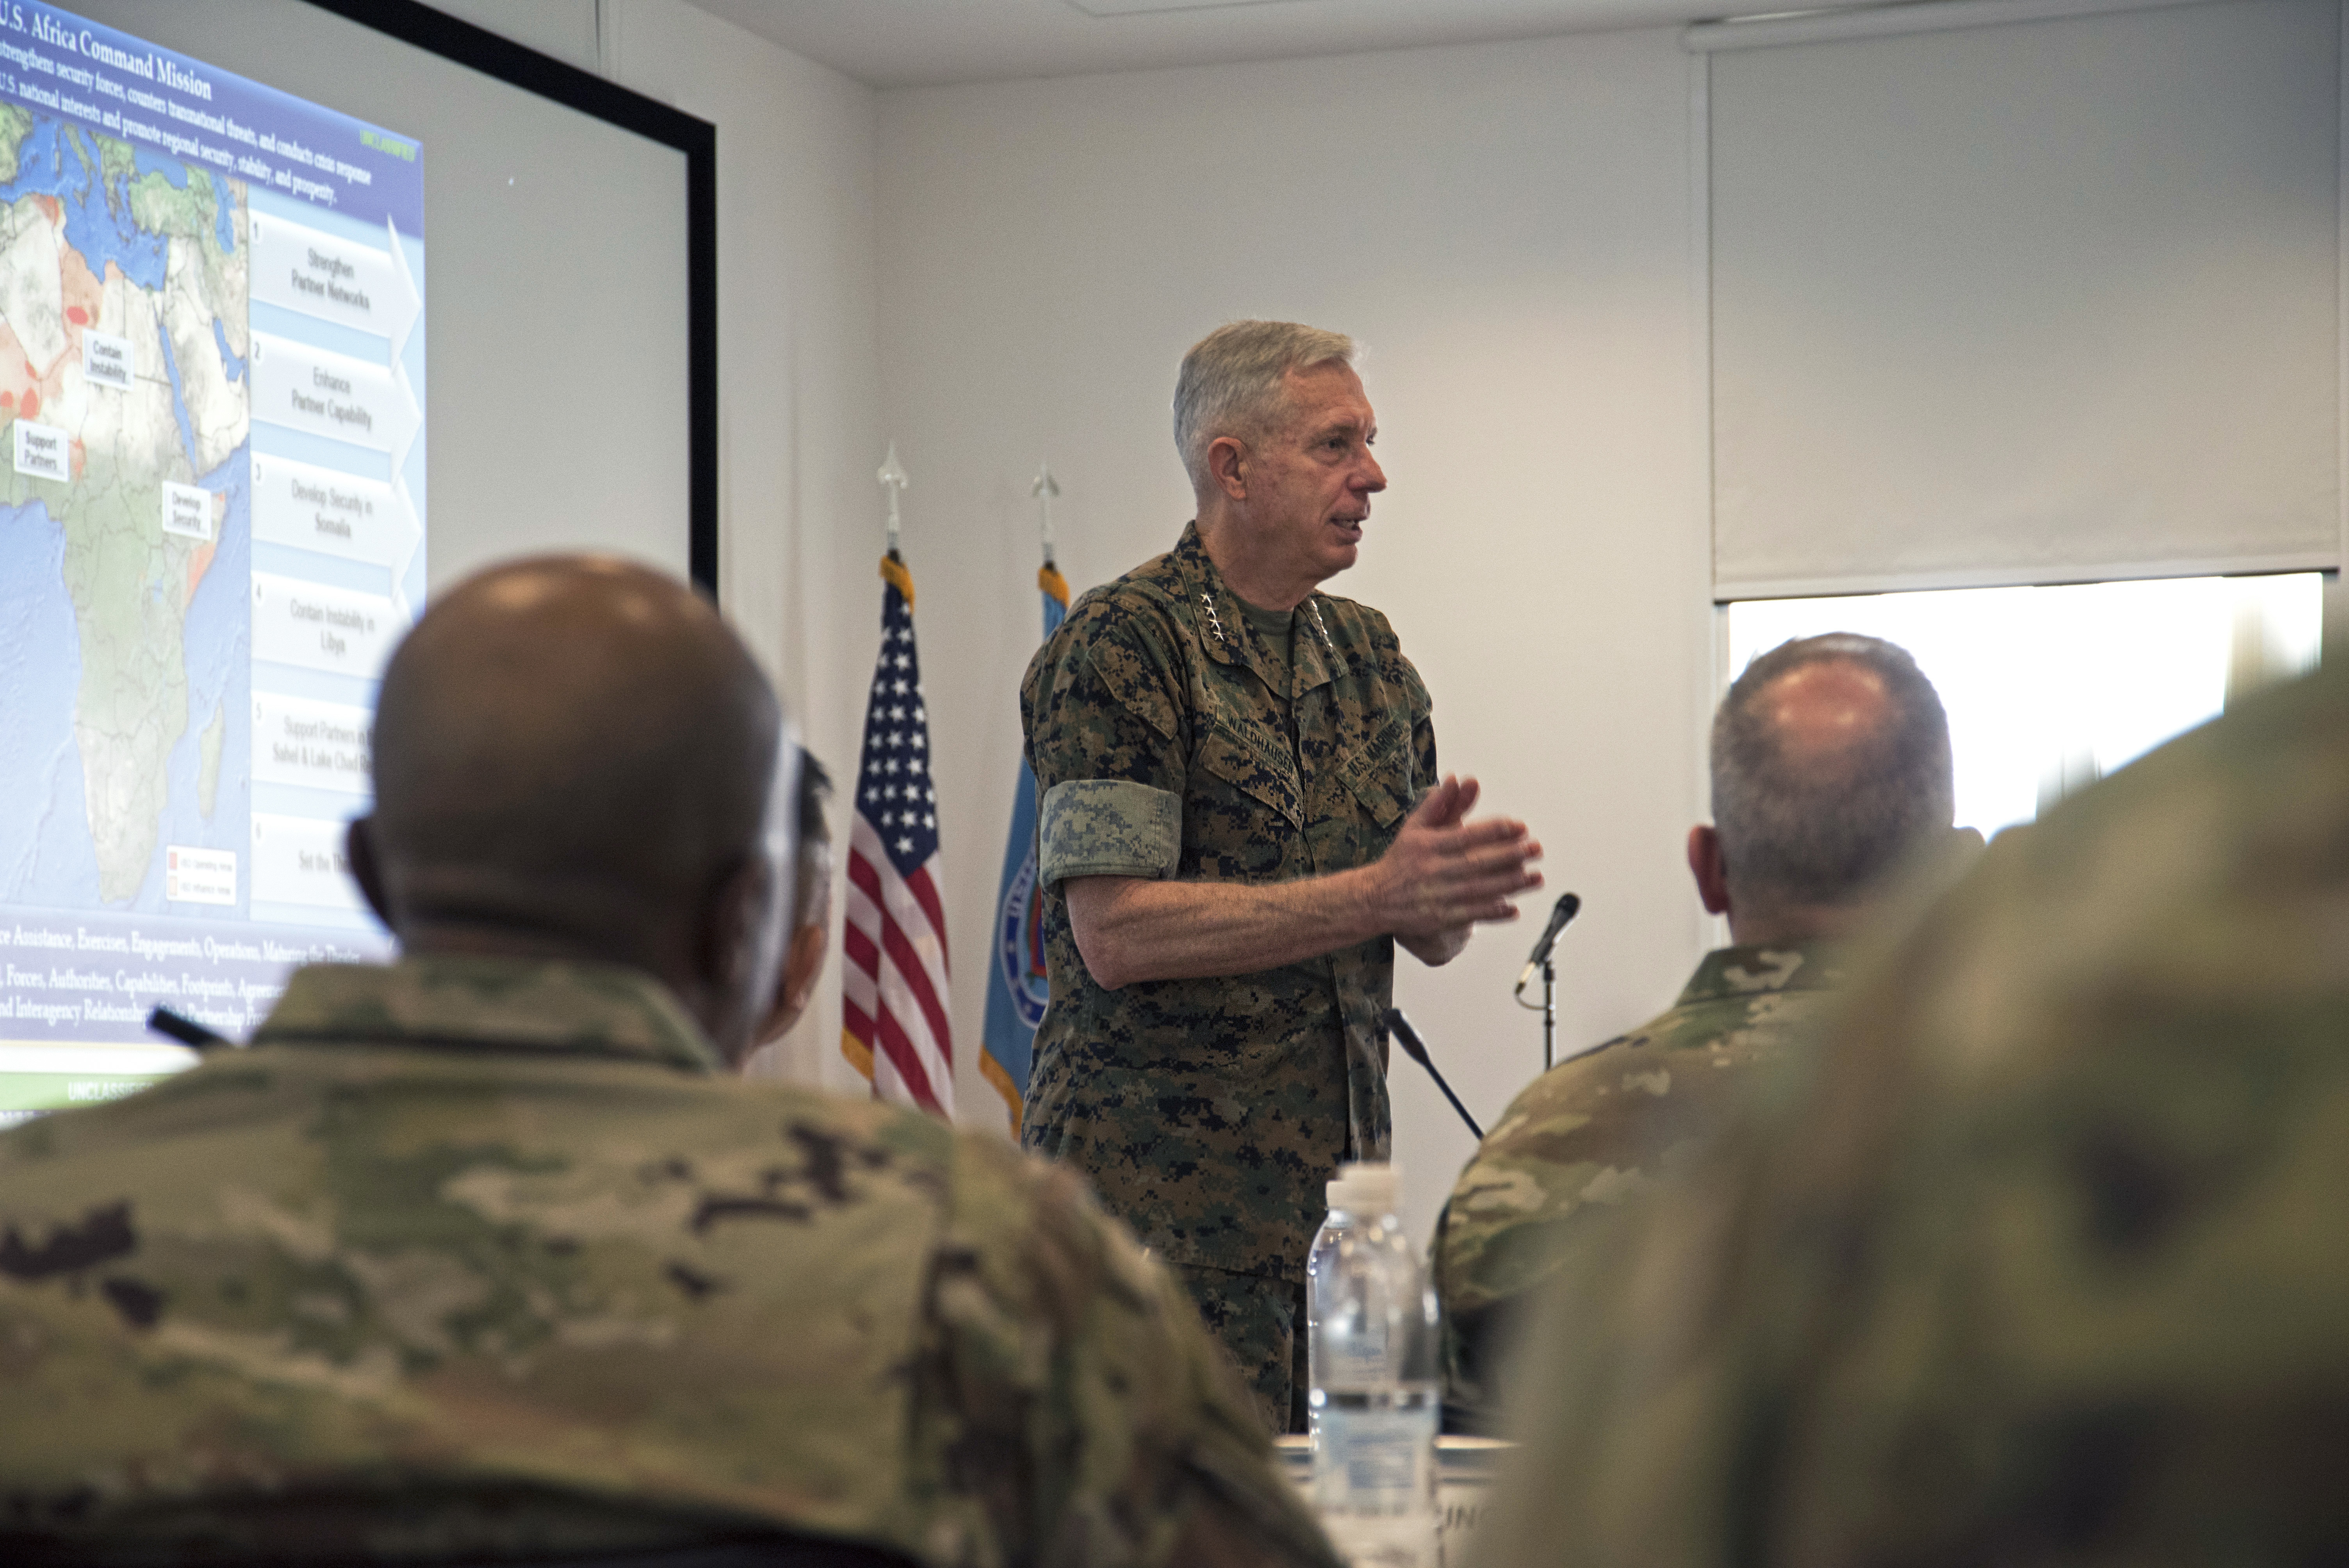 Marine Corps Gen. Thomas Waldhauser, commander, U.S. Africa Command, speaks to attendees during The 2019 Adjutant General State Partnership Program Conference April 15 in Stuttgart, Germany. Waldhauser spoke about the important role that National Guard members and the SPP play in the AFRICOM mission. (U.S. Navy photo by Mass Communication Specialist 1st Class Christopher Hurd/Released)